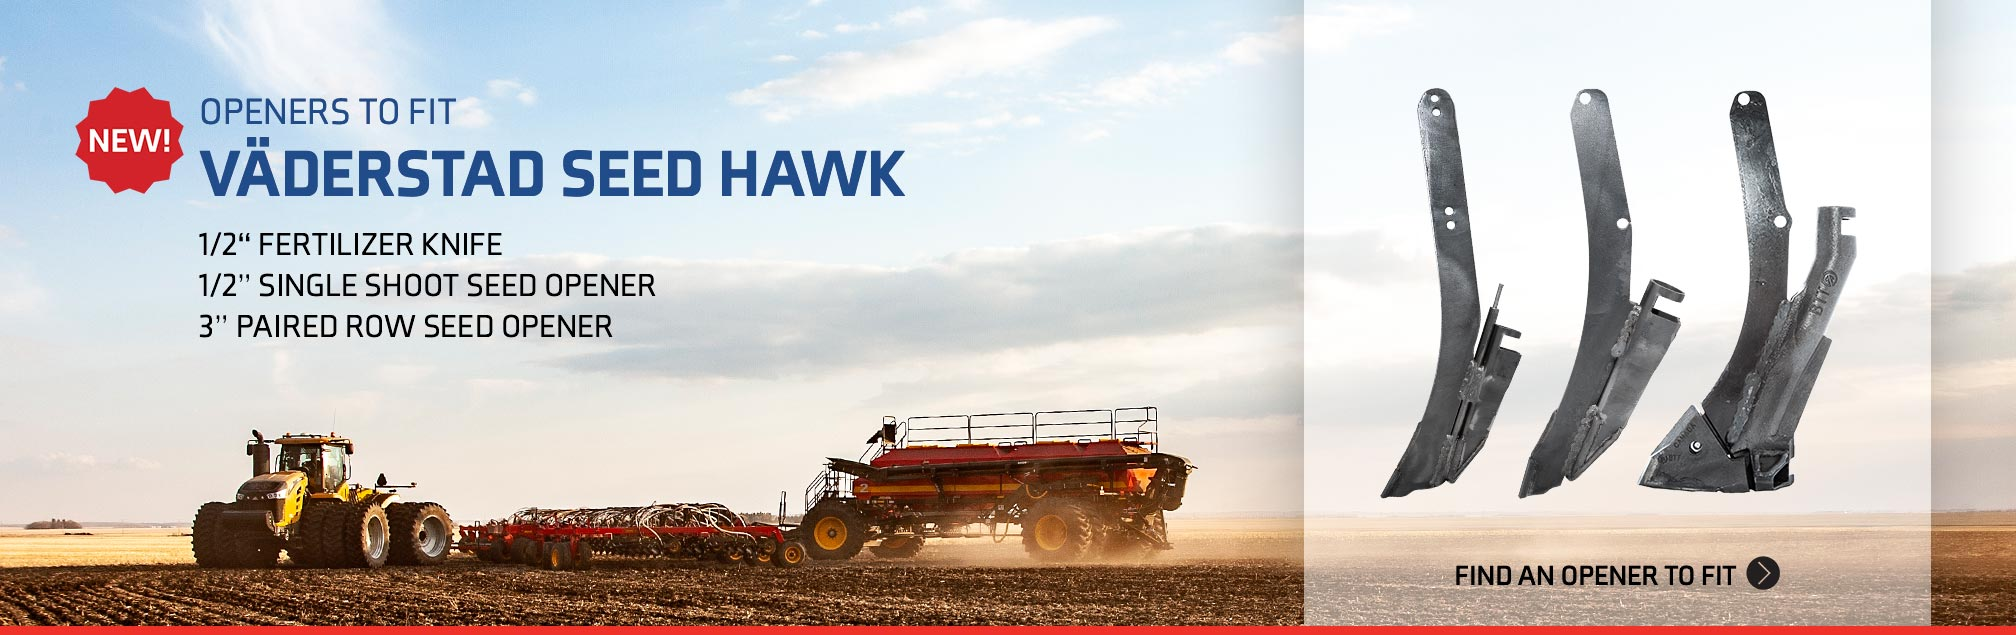 Website_Banner_Home_Vaderstad-Seed-Hawk-Openers